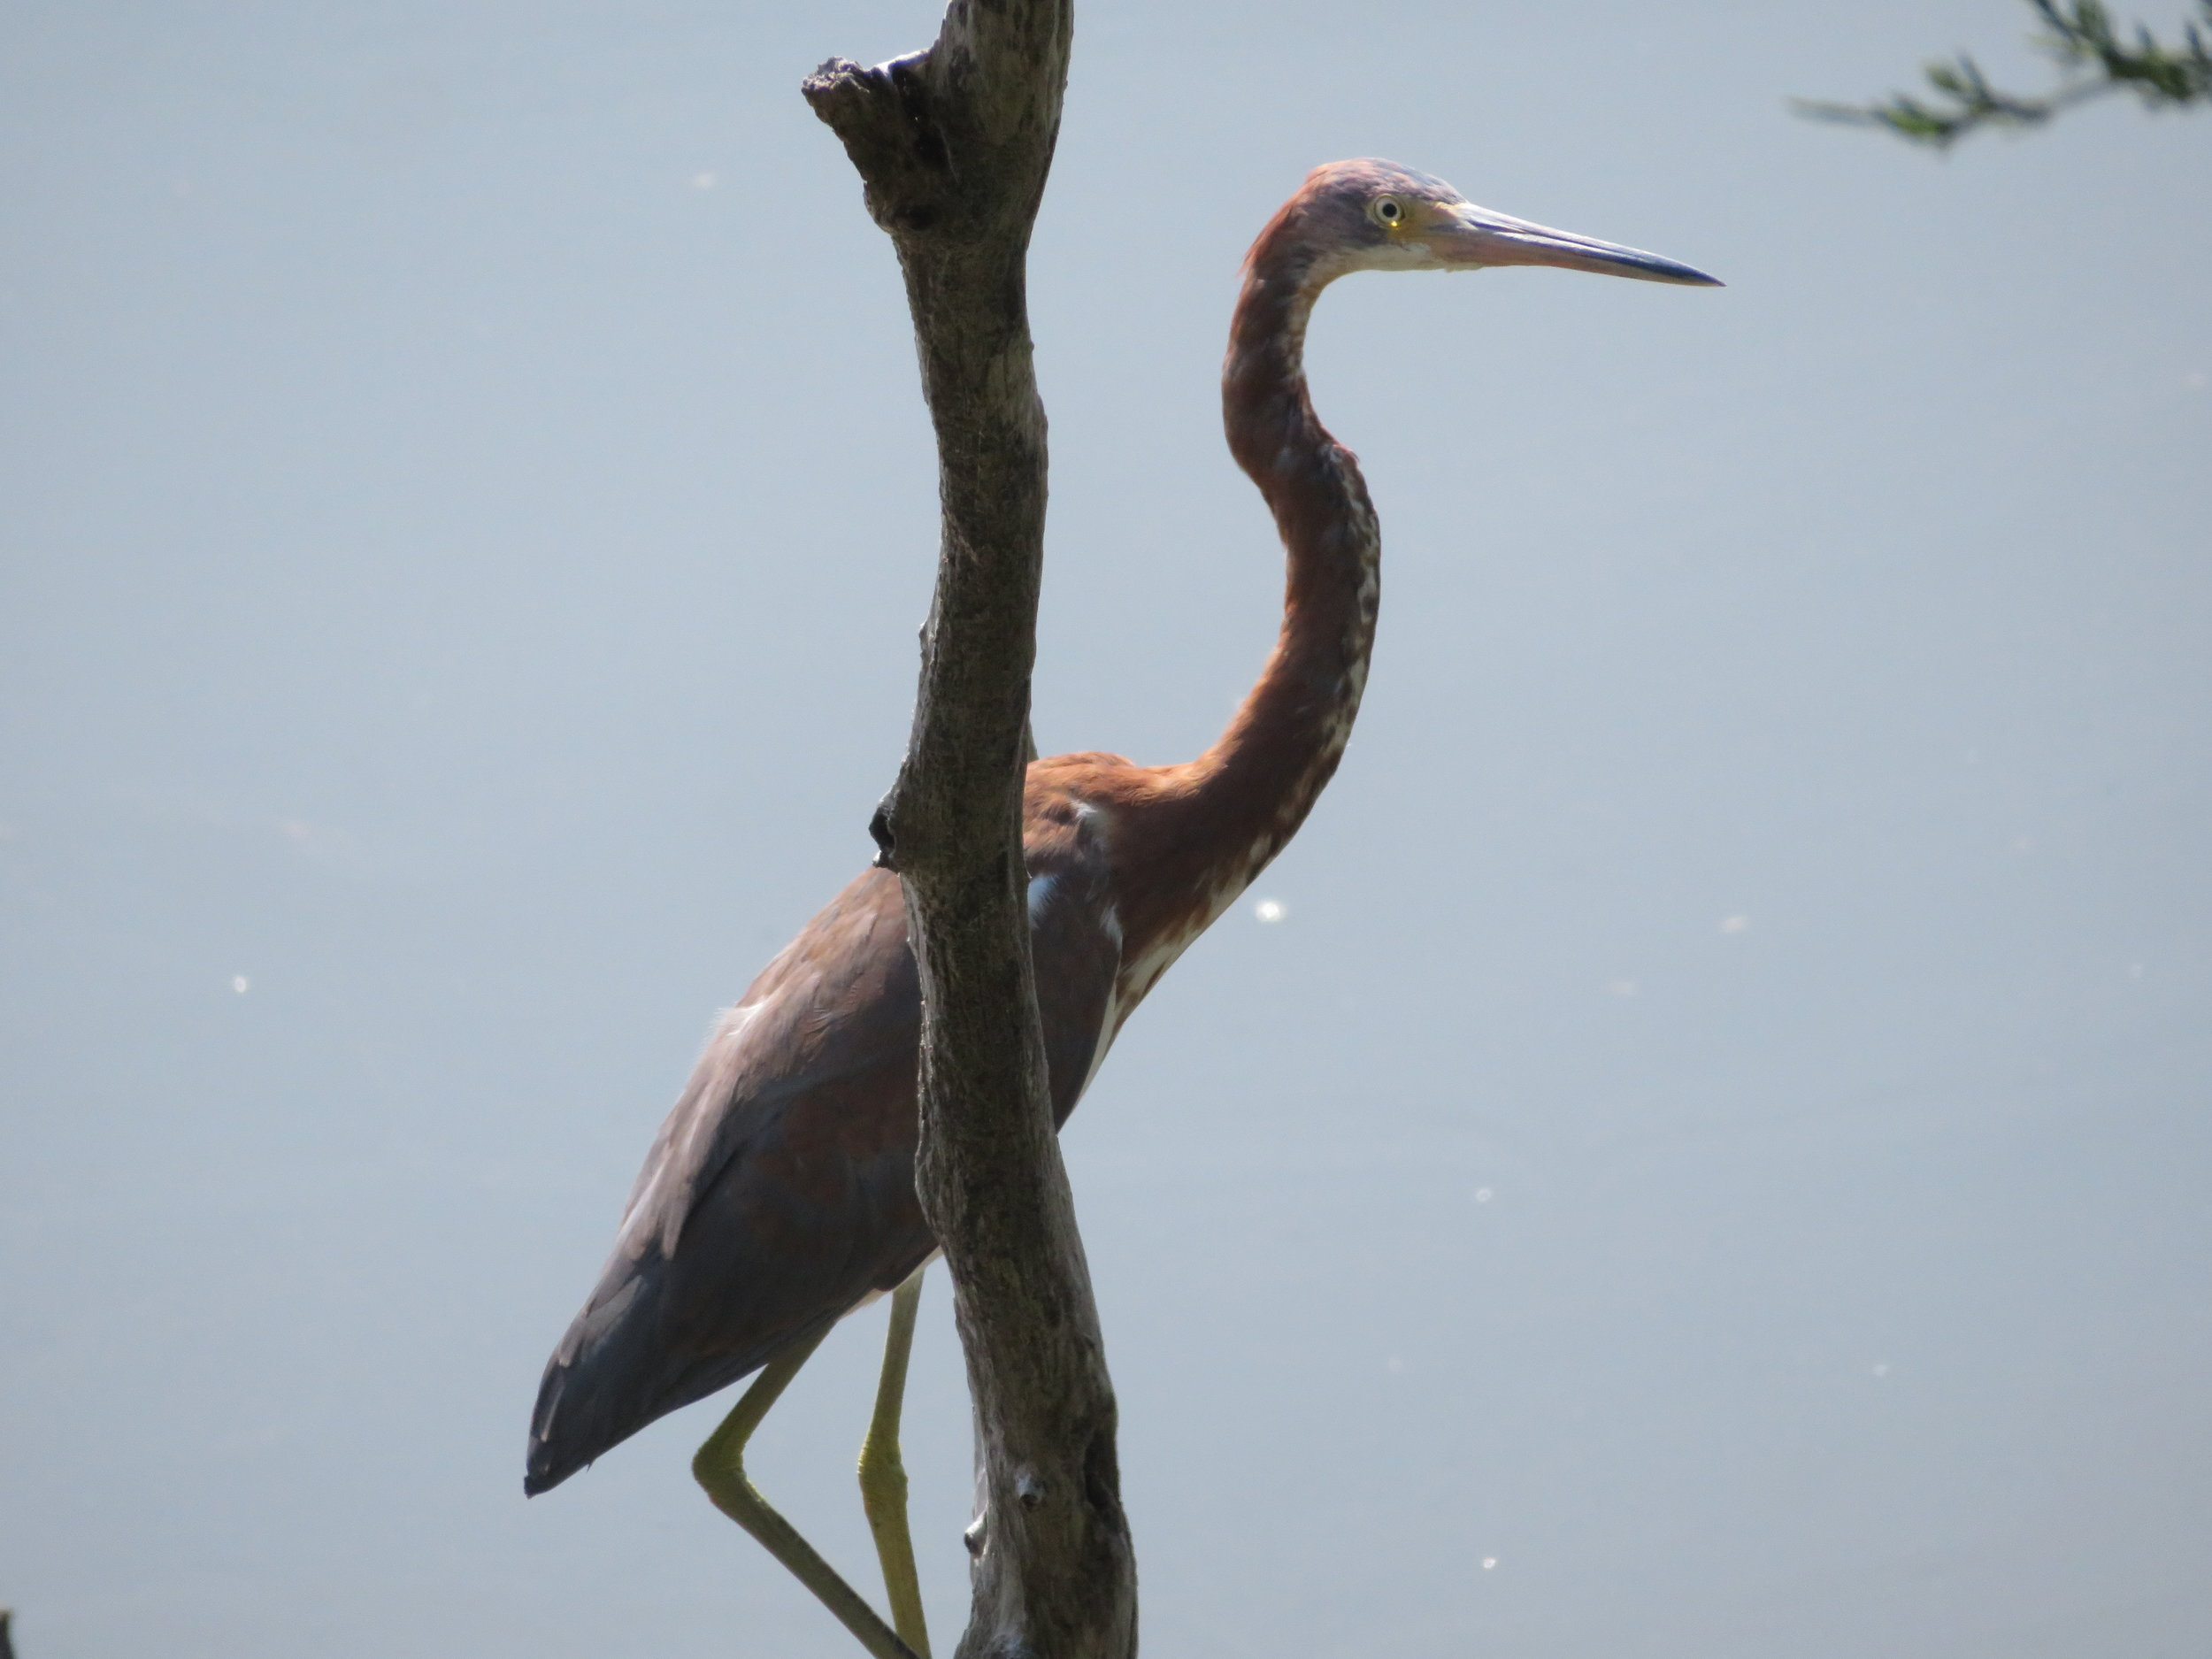 A juvenile tri-color heron waits patiently for an early morning snack.